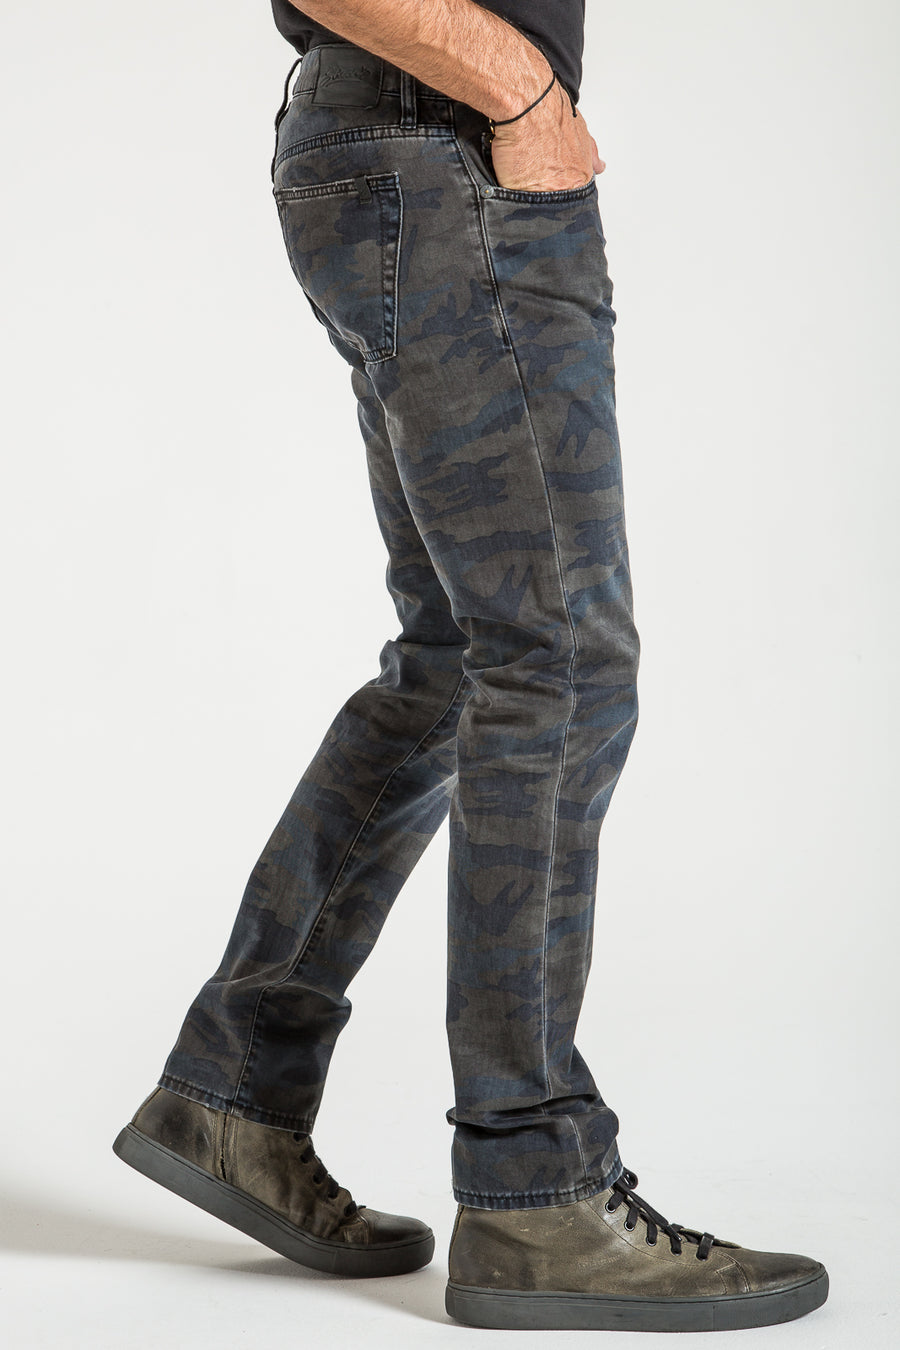 BARFLY SLIM IN NAVY CAMO DENIM